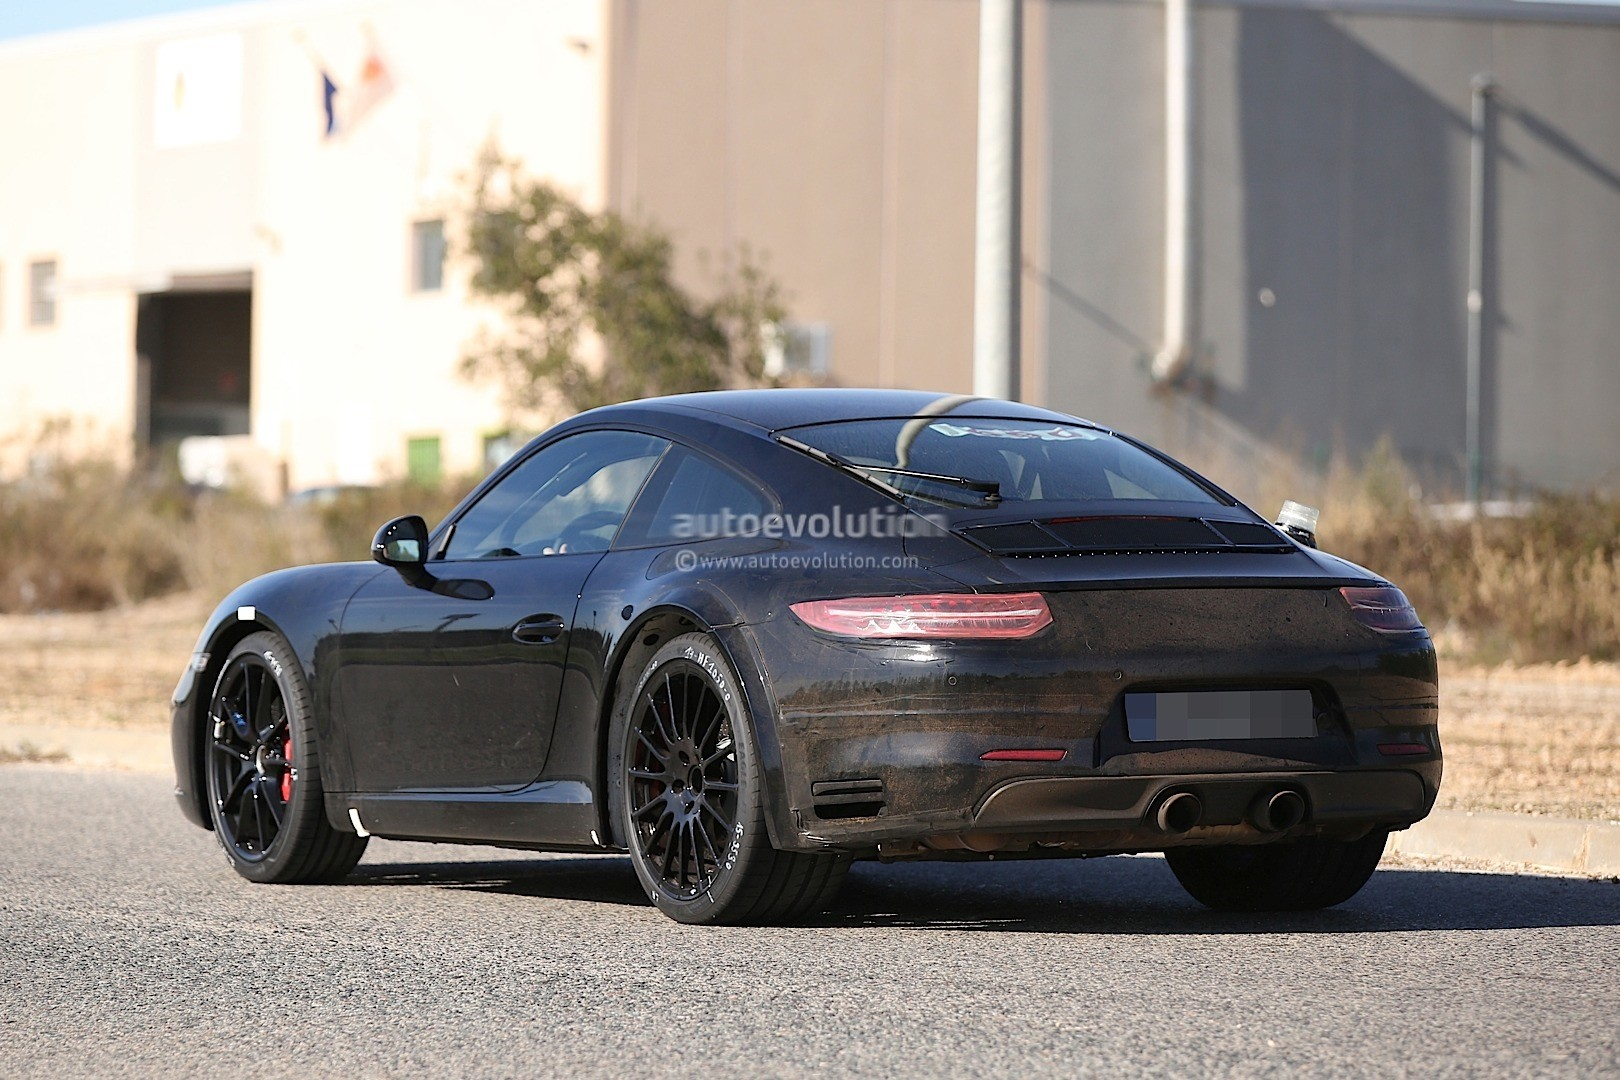 next generation 2019 porsche 911 spied with wider tracks say hello to the hybrid autoevolution. Black Bedroom Furniture Sets. Home Design Ideas